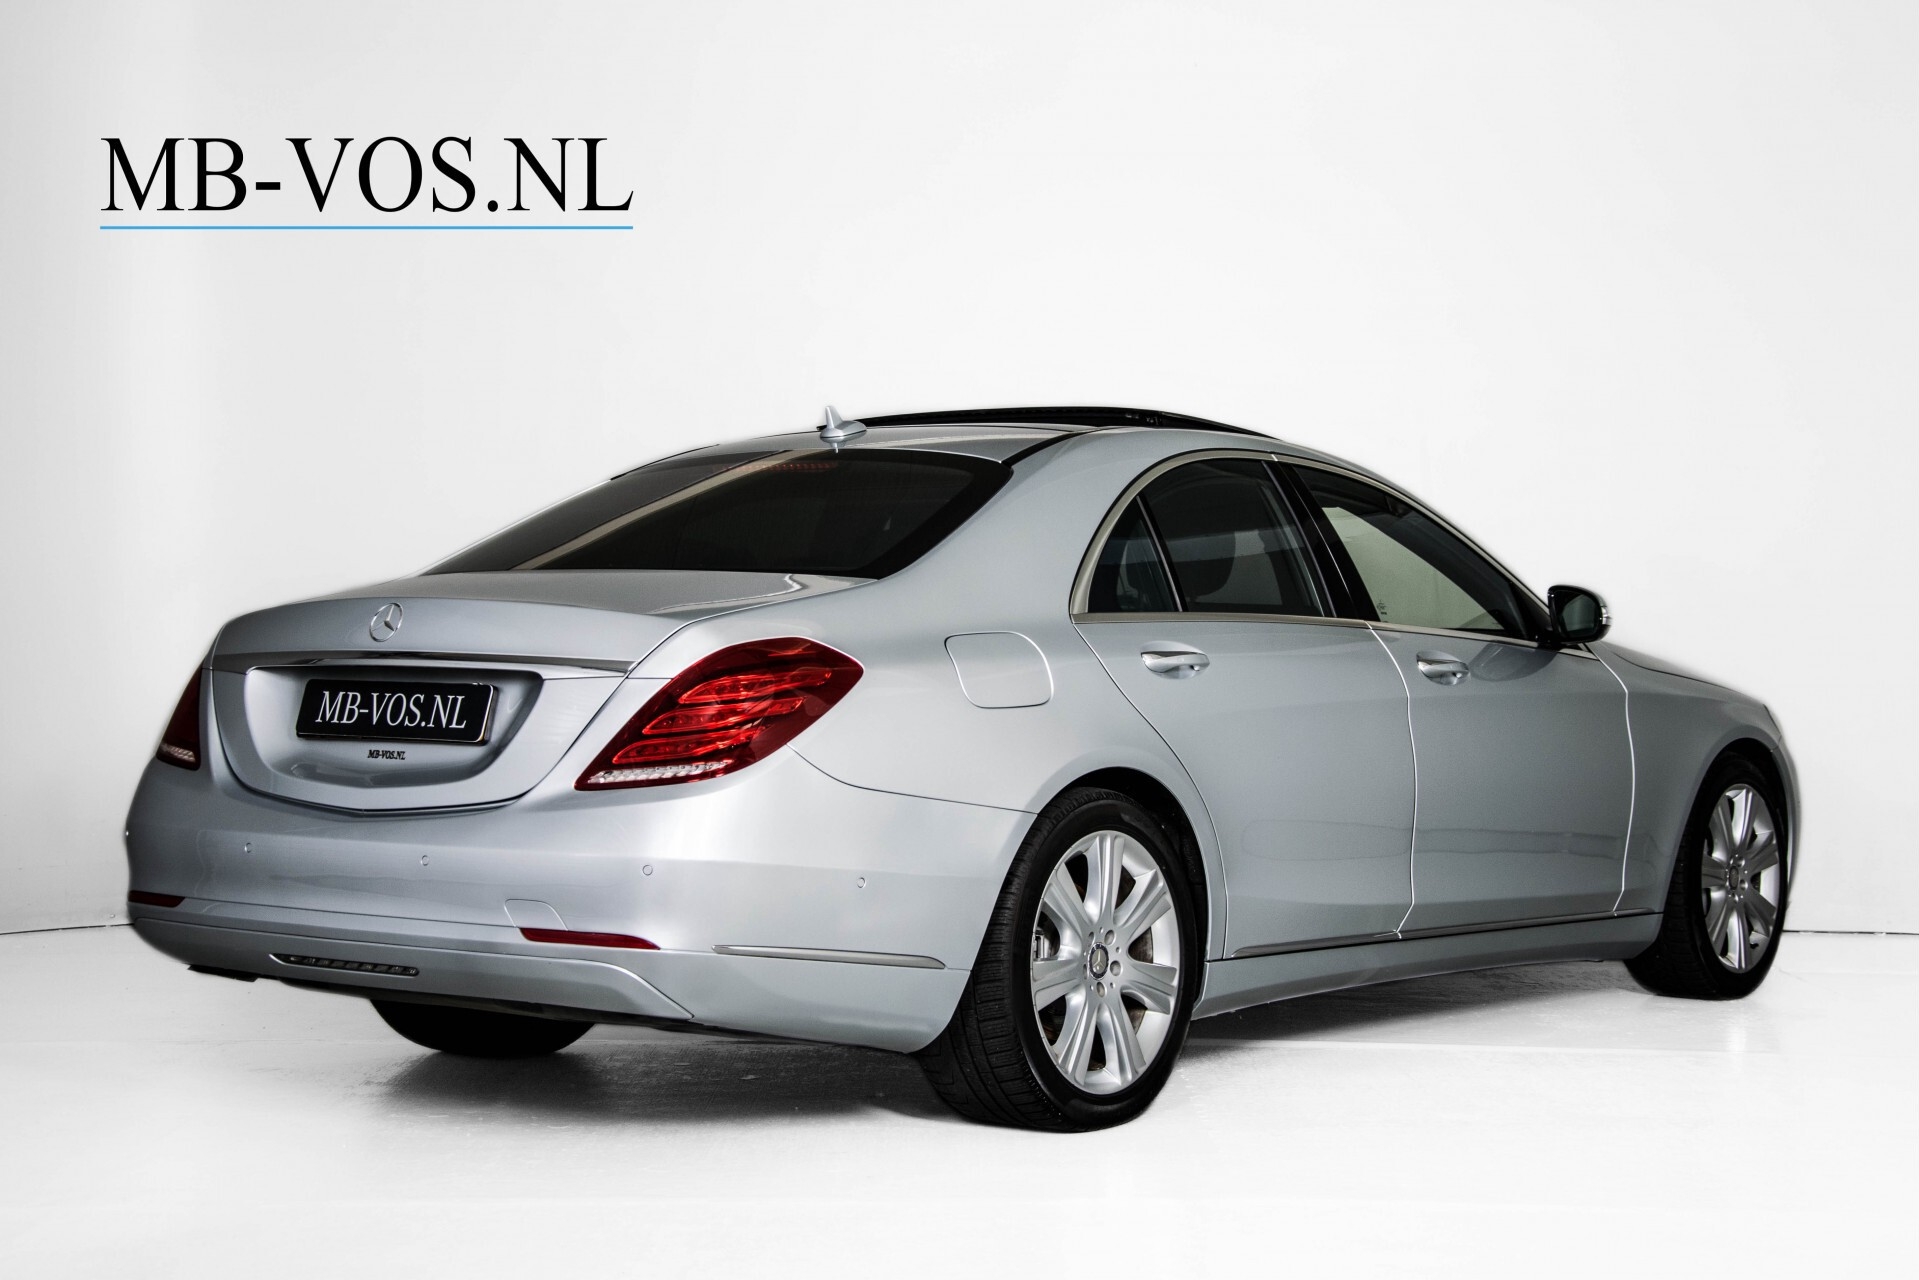 Mercedes-Benz S-Klasse 350 Bluetec Exclusive Panorama/Massage/Keyless/Distronic/Standkachel Aut7 Foto 2